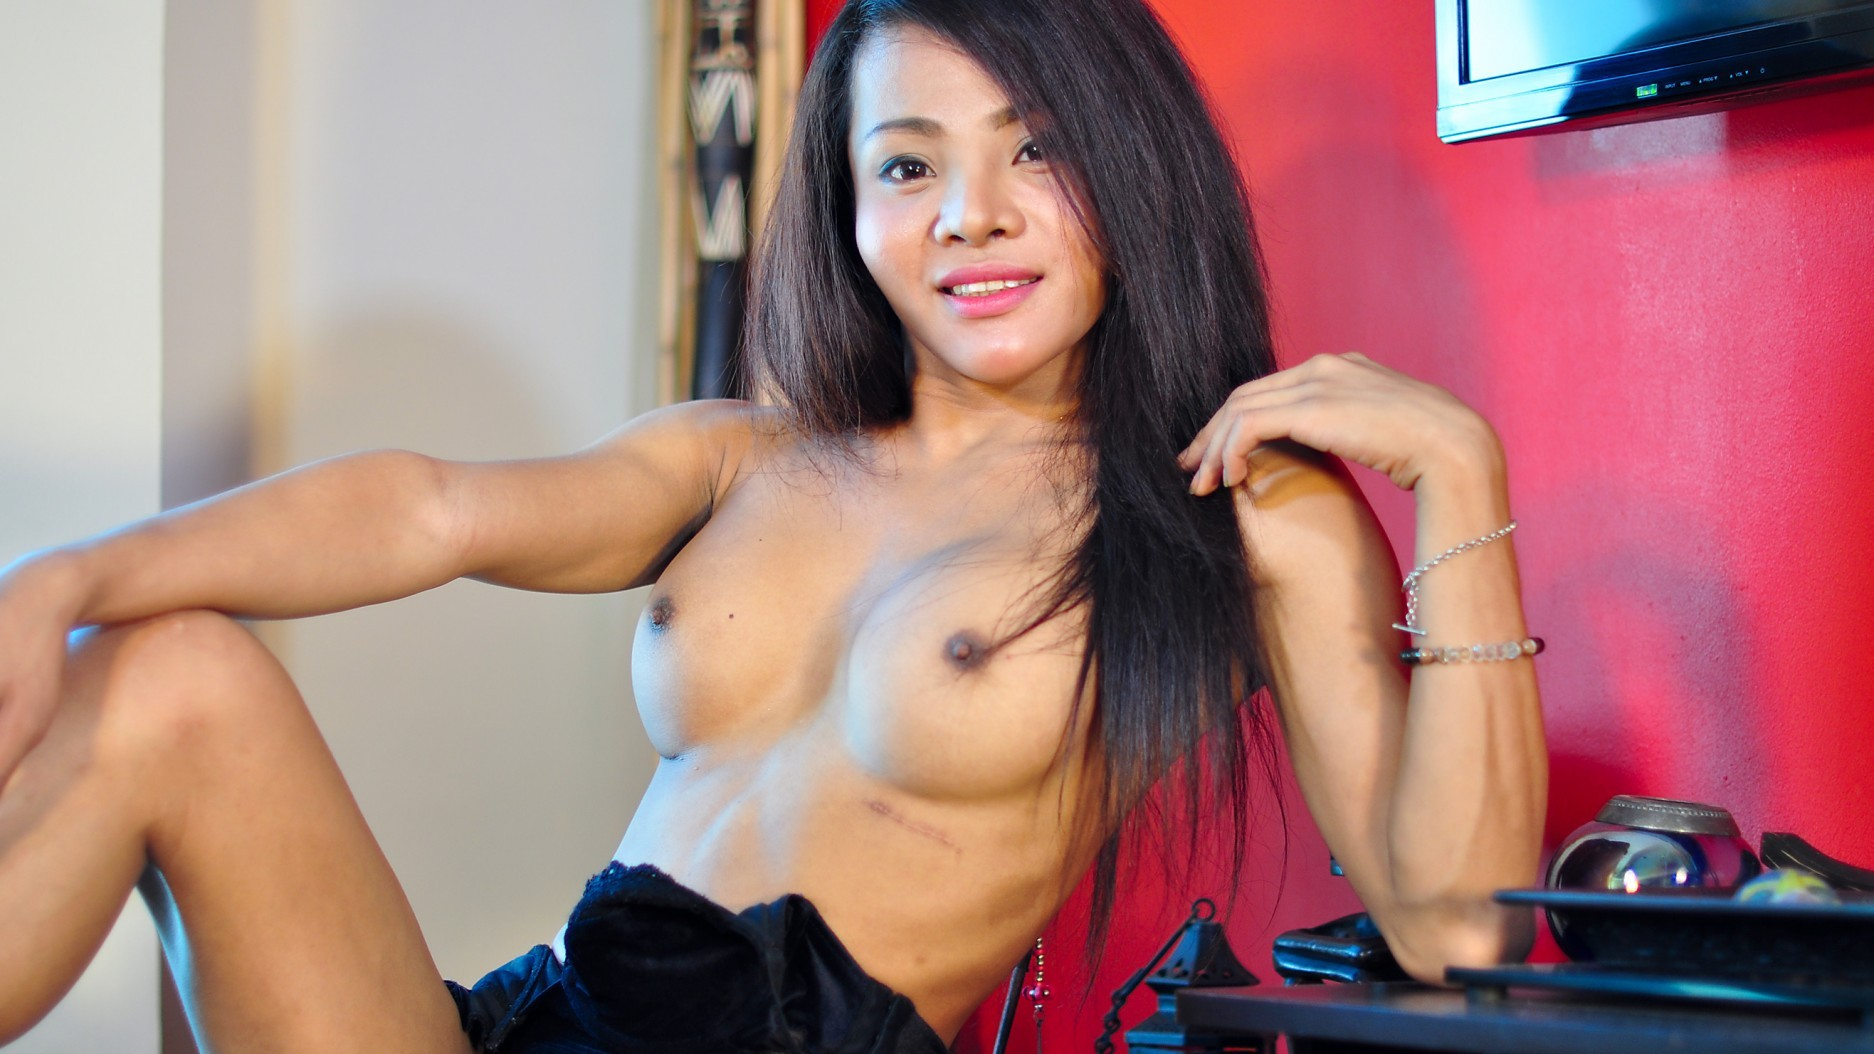 Phillipino ladyboy shemale